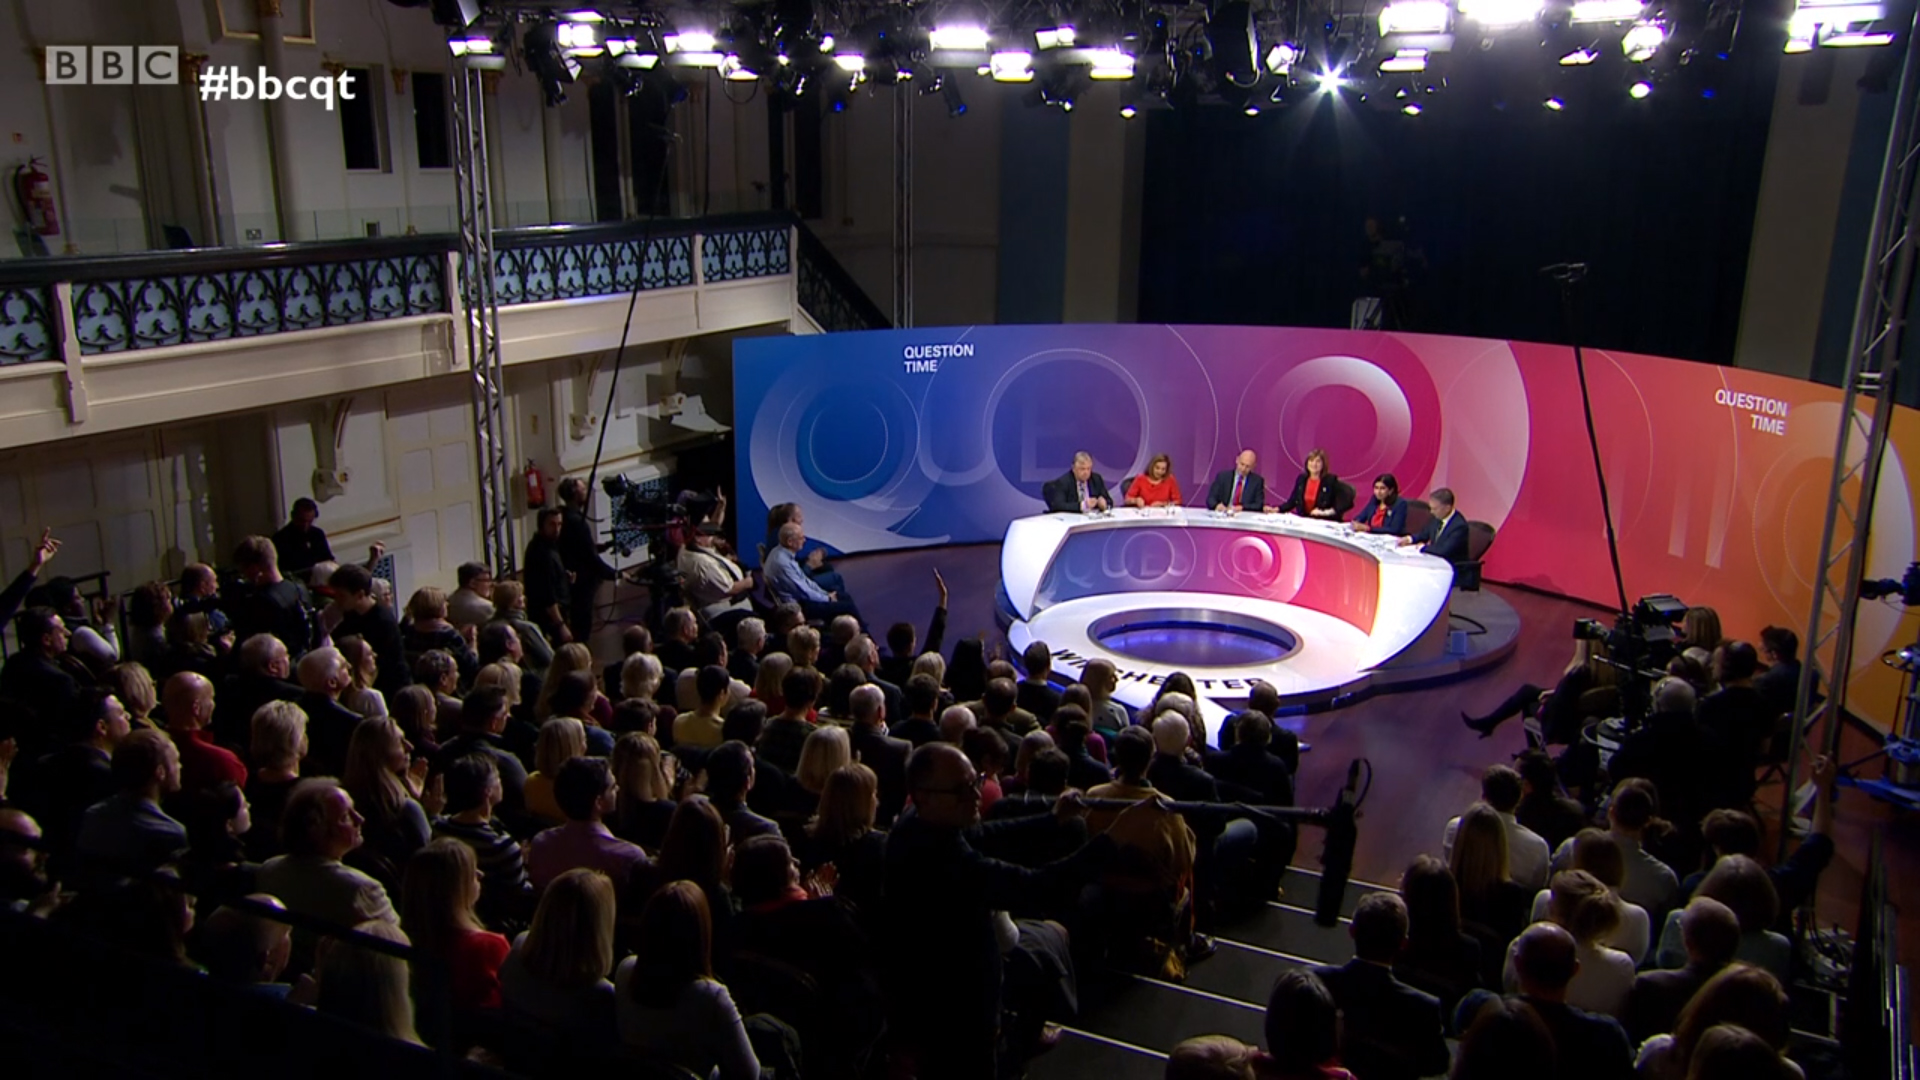 BBC refuse to answer The National over Question Time audience debacle